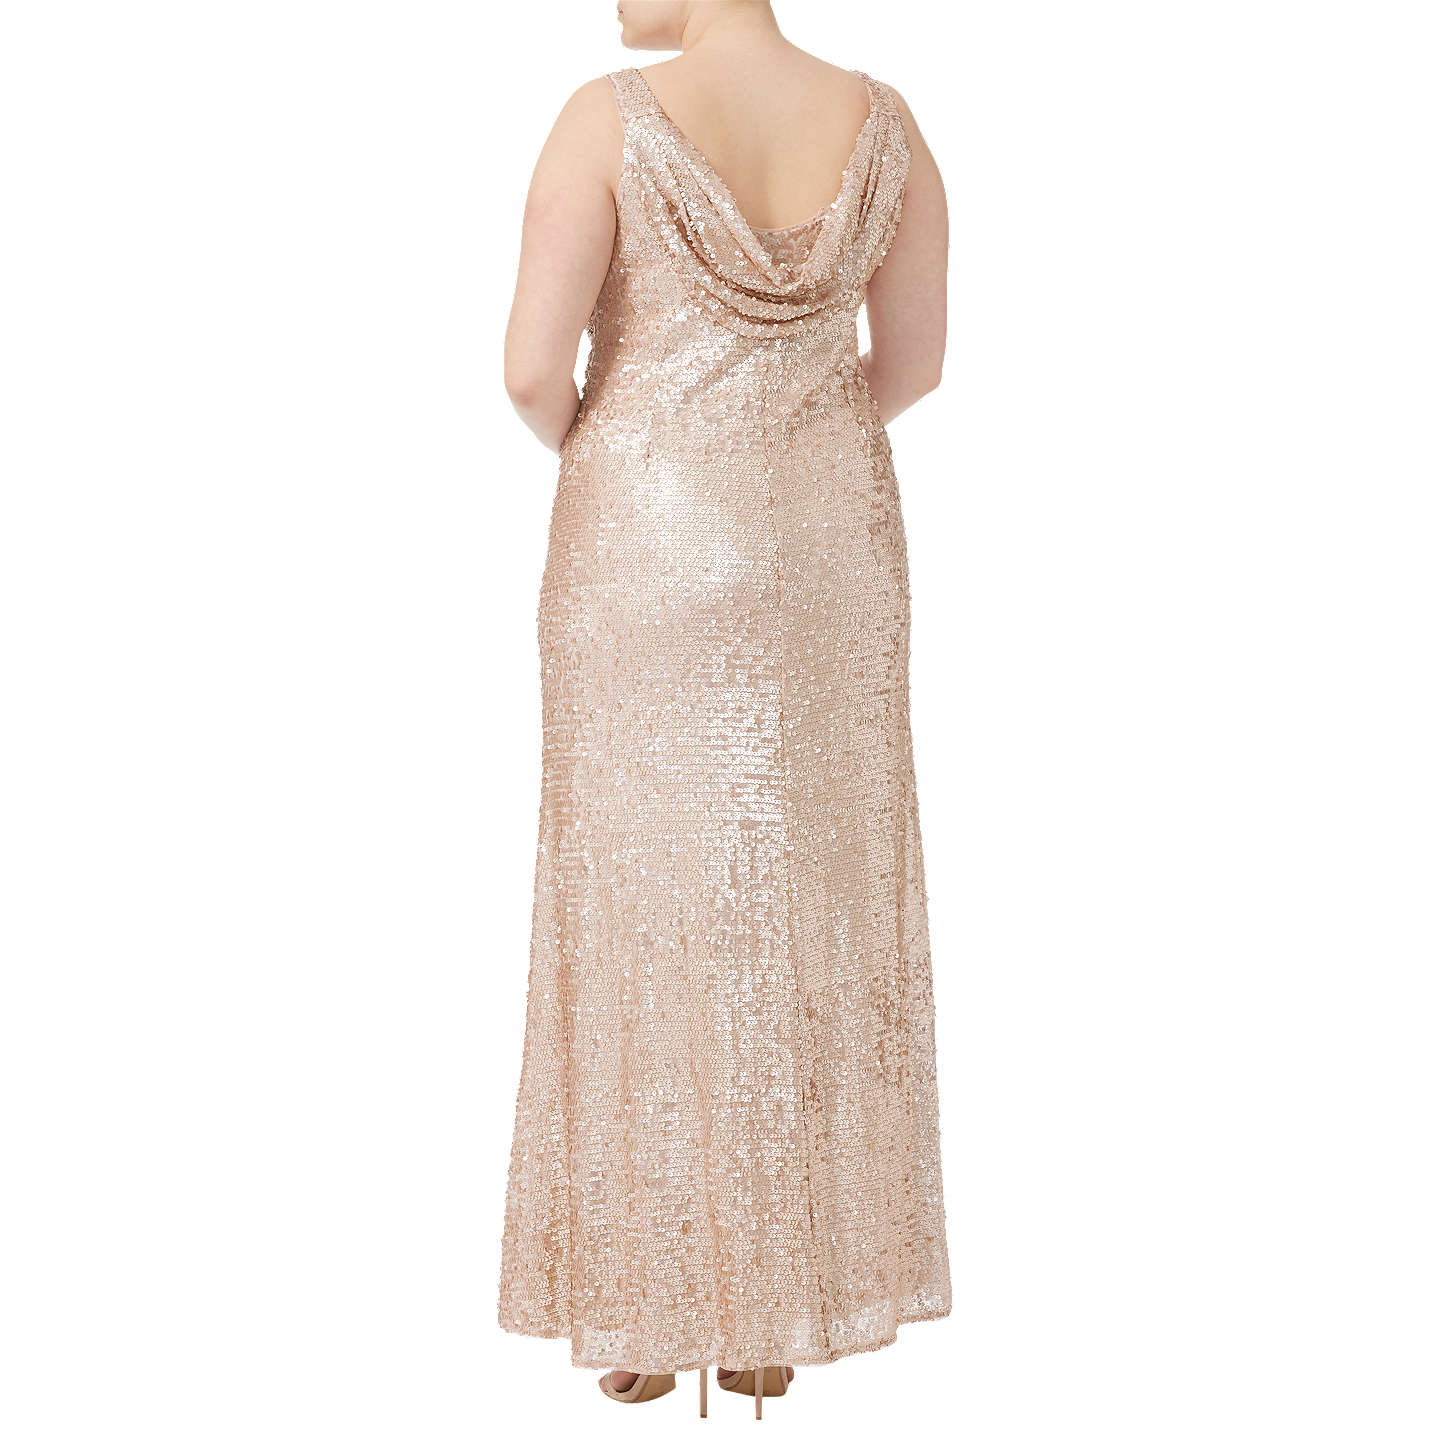 BuyAdrianna Papell Plus Size Sequin Pailette Maxi Dress, Nude, 18 Online at johnlewis.com